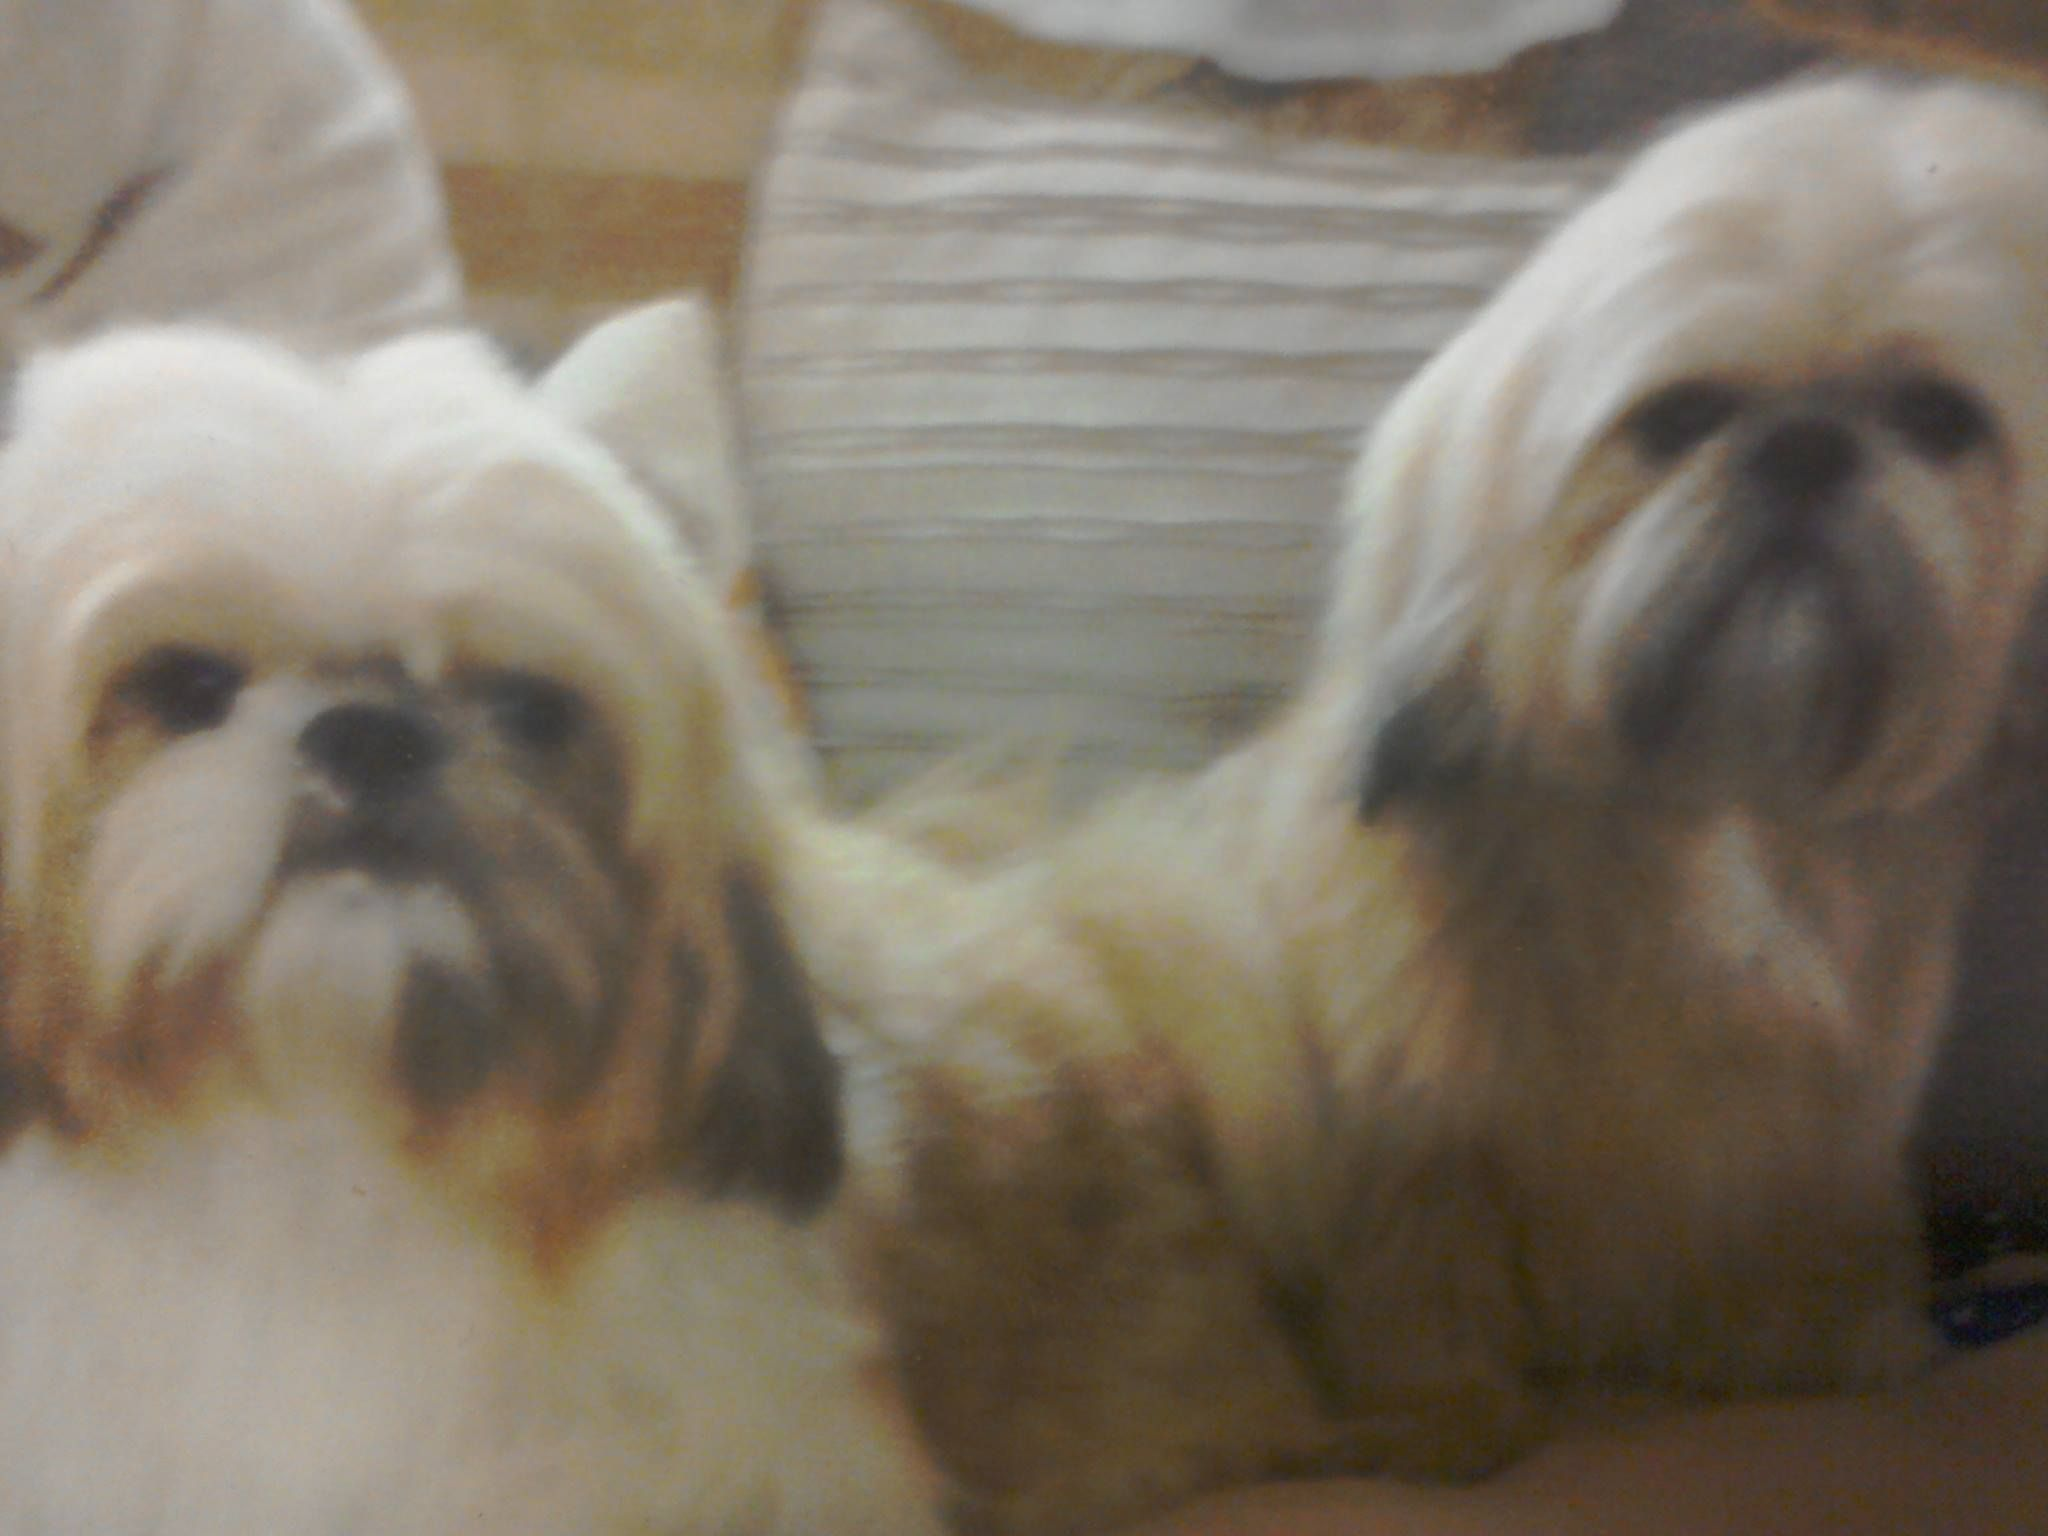 Two Shih Tzu S Missing In Mickletown Methley Leeds With Images Shih Tzus Shih Tzu Dogs